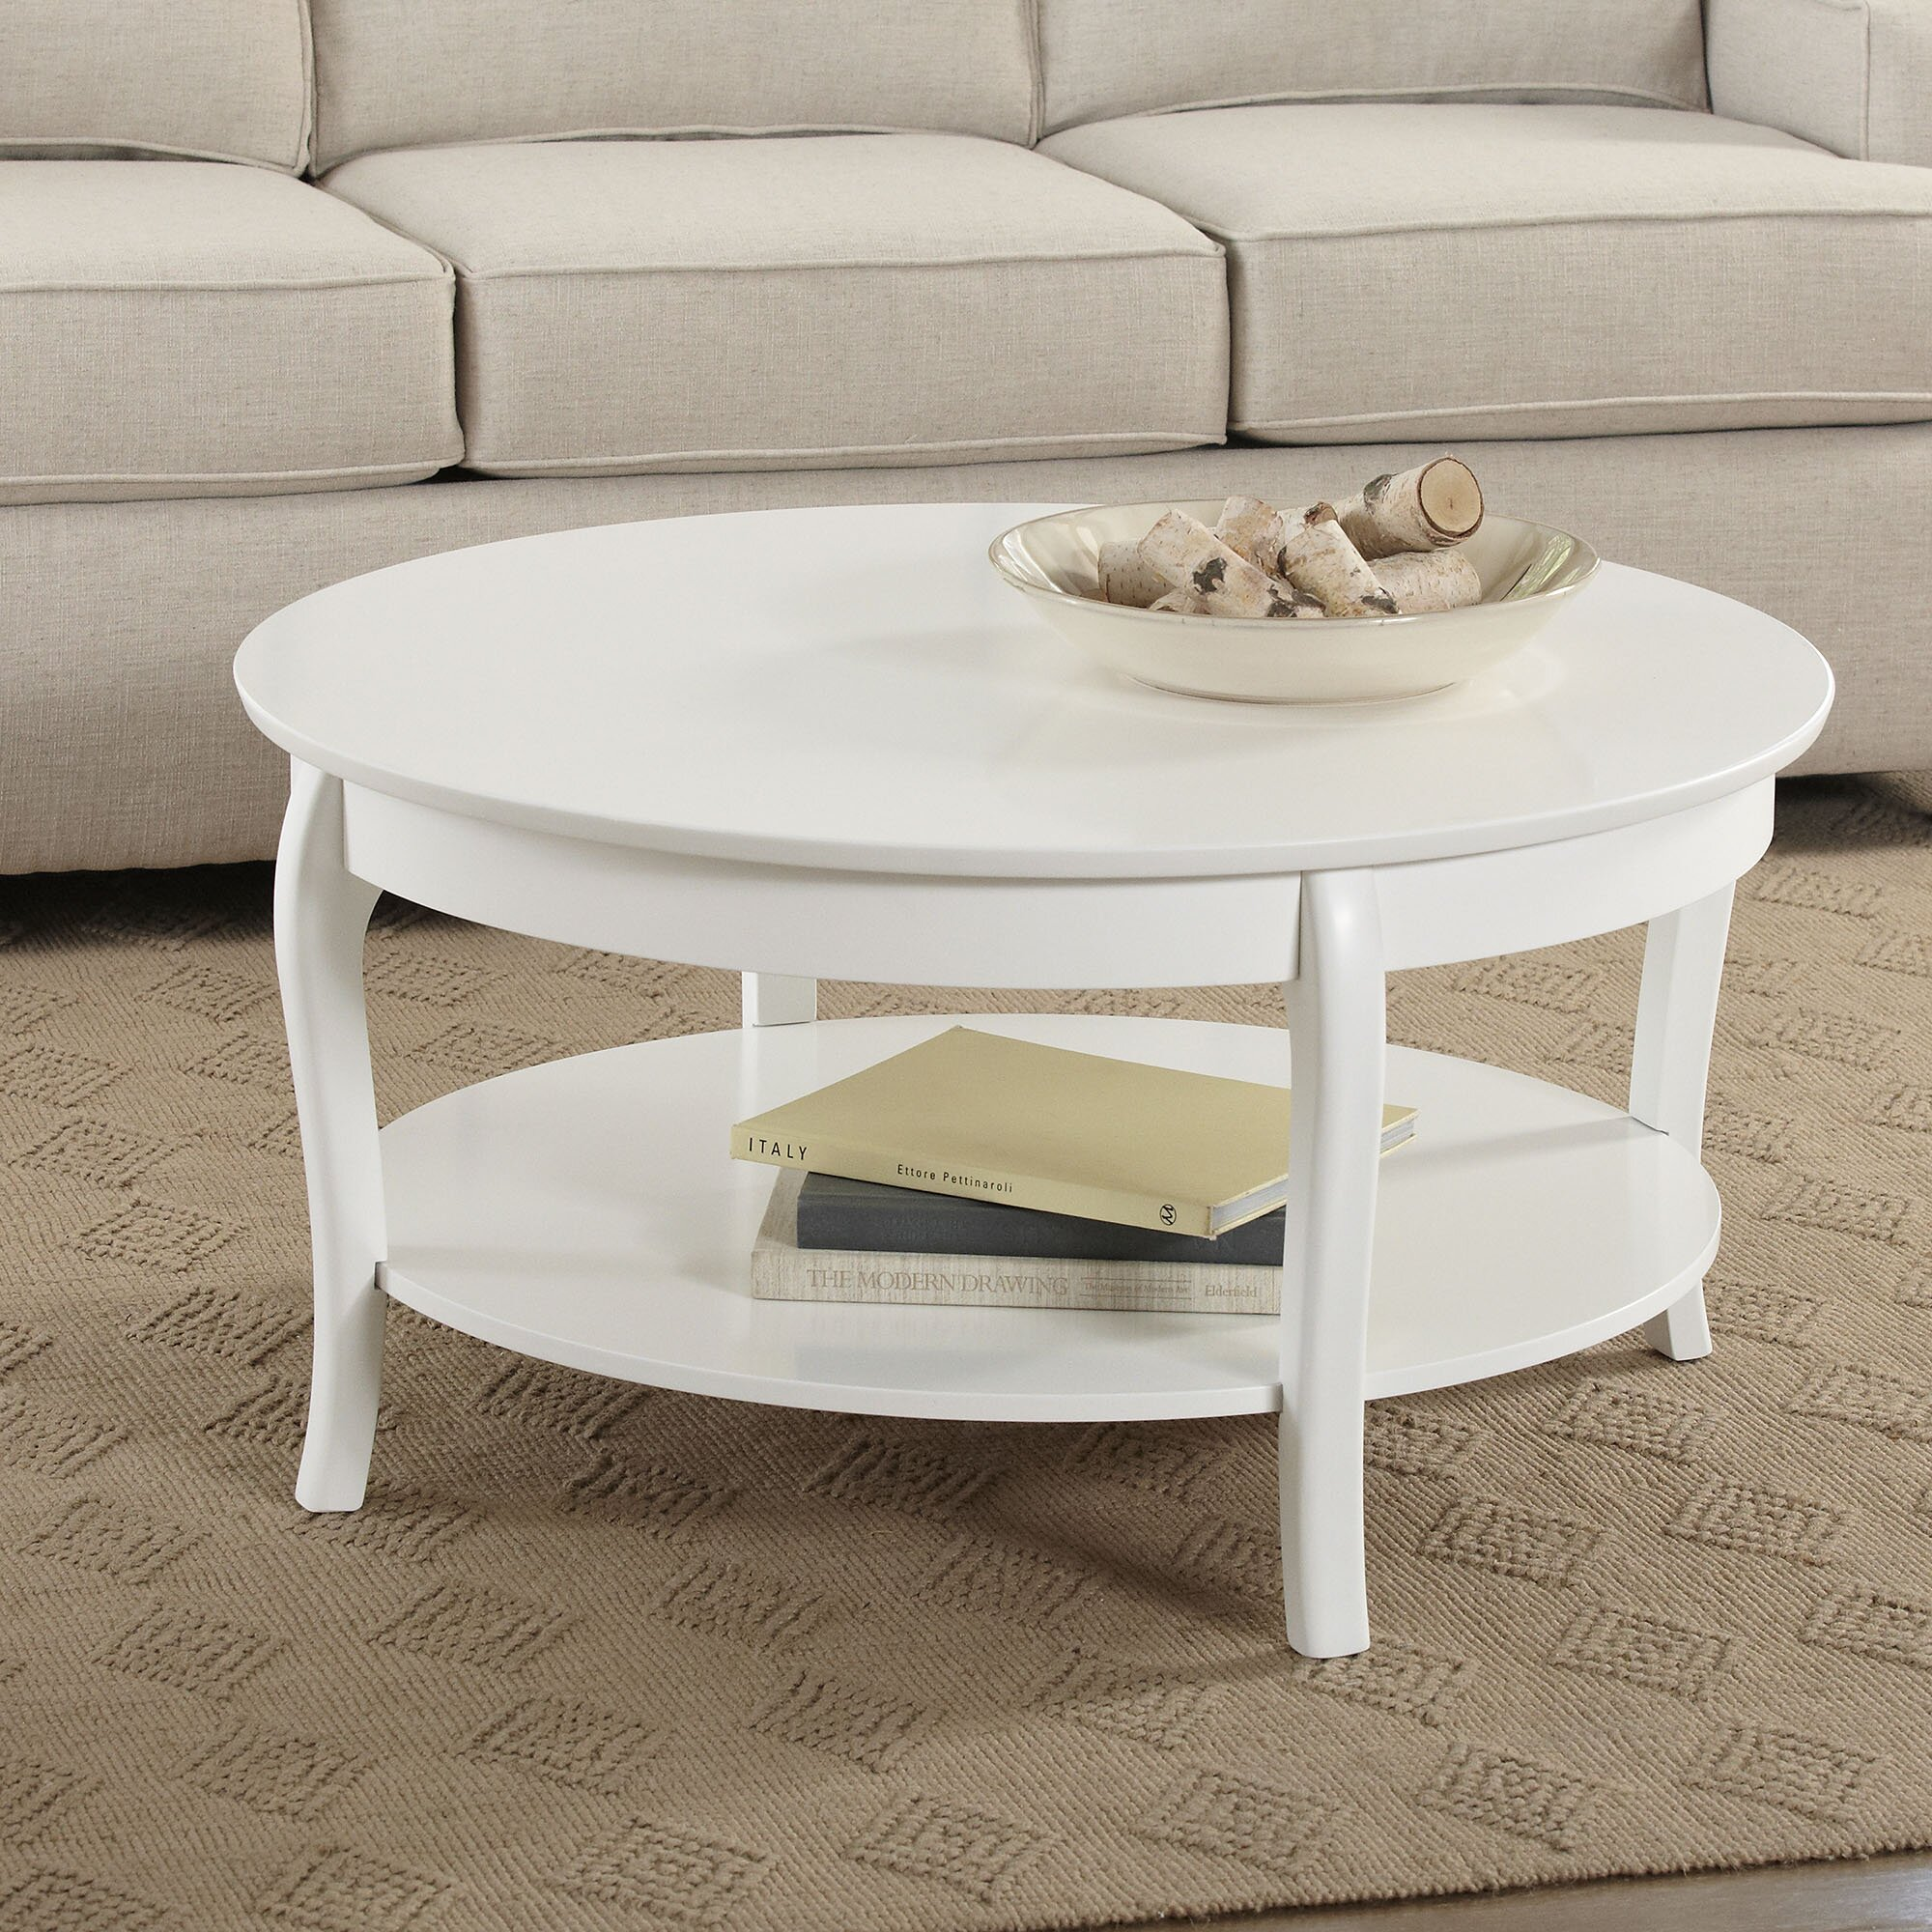 Round Coffee Table Round Coffee Tables Youll Love Wayfair